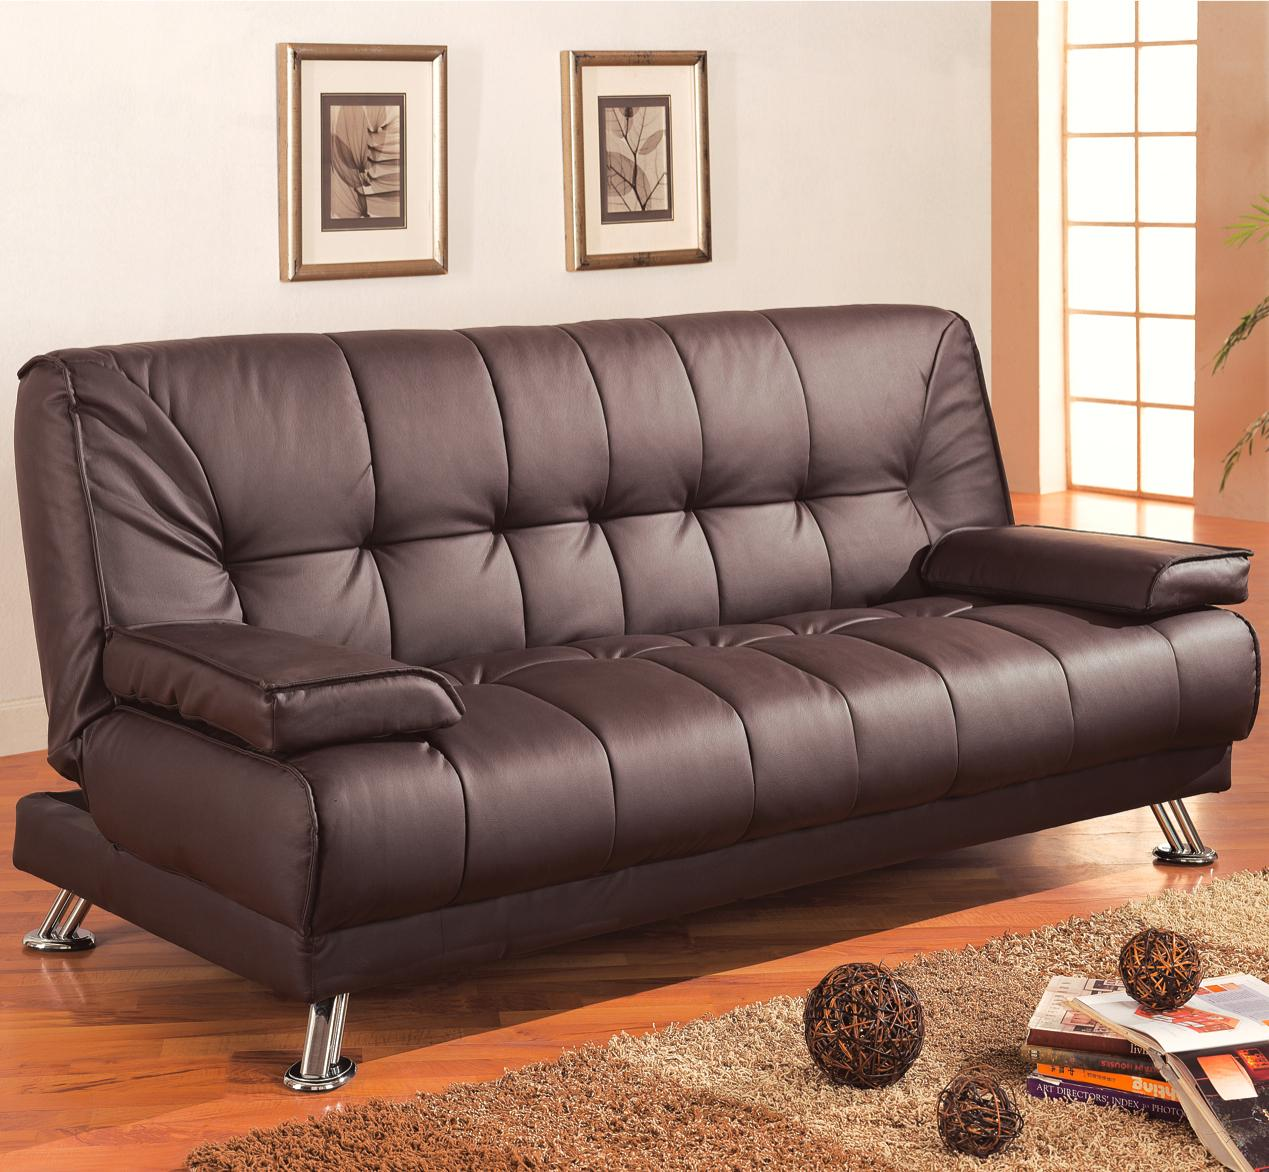 Coaster Sofa Beds And Futons Bed Item Number 300148